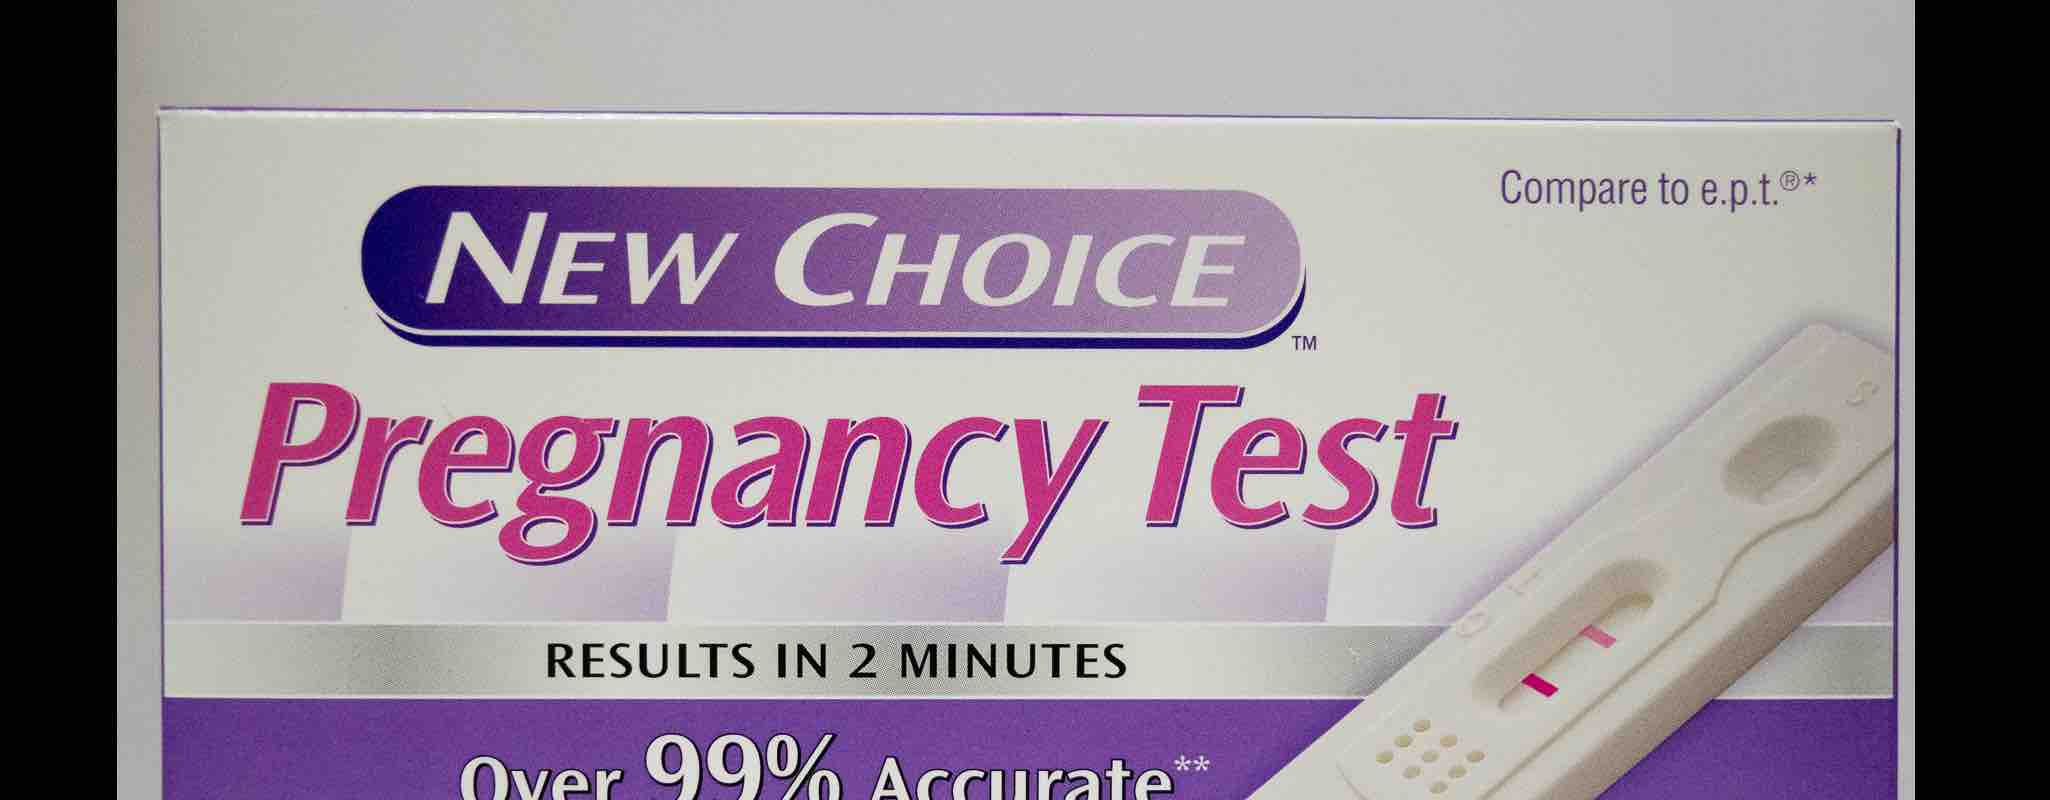 Can I buy the New Choice One Step Pregnancy Test from Amazon